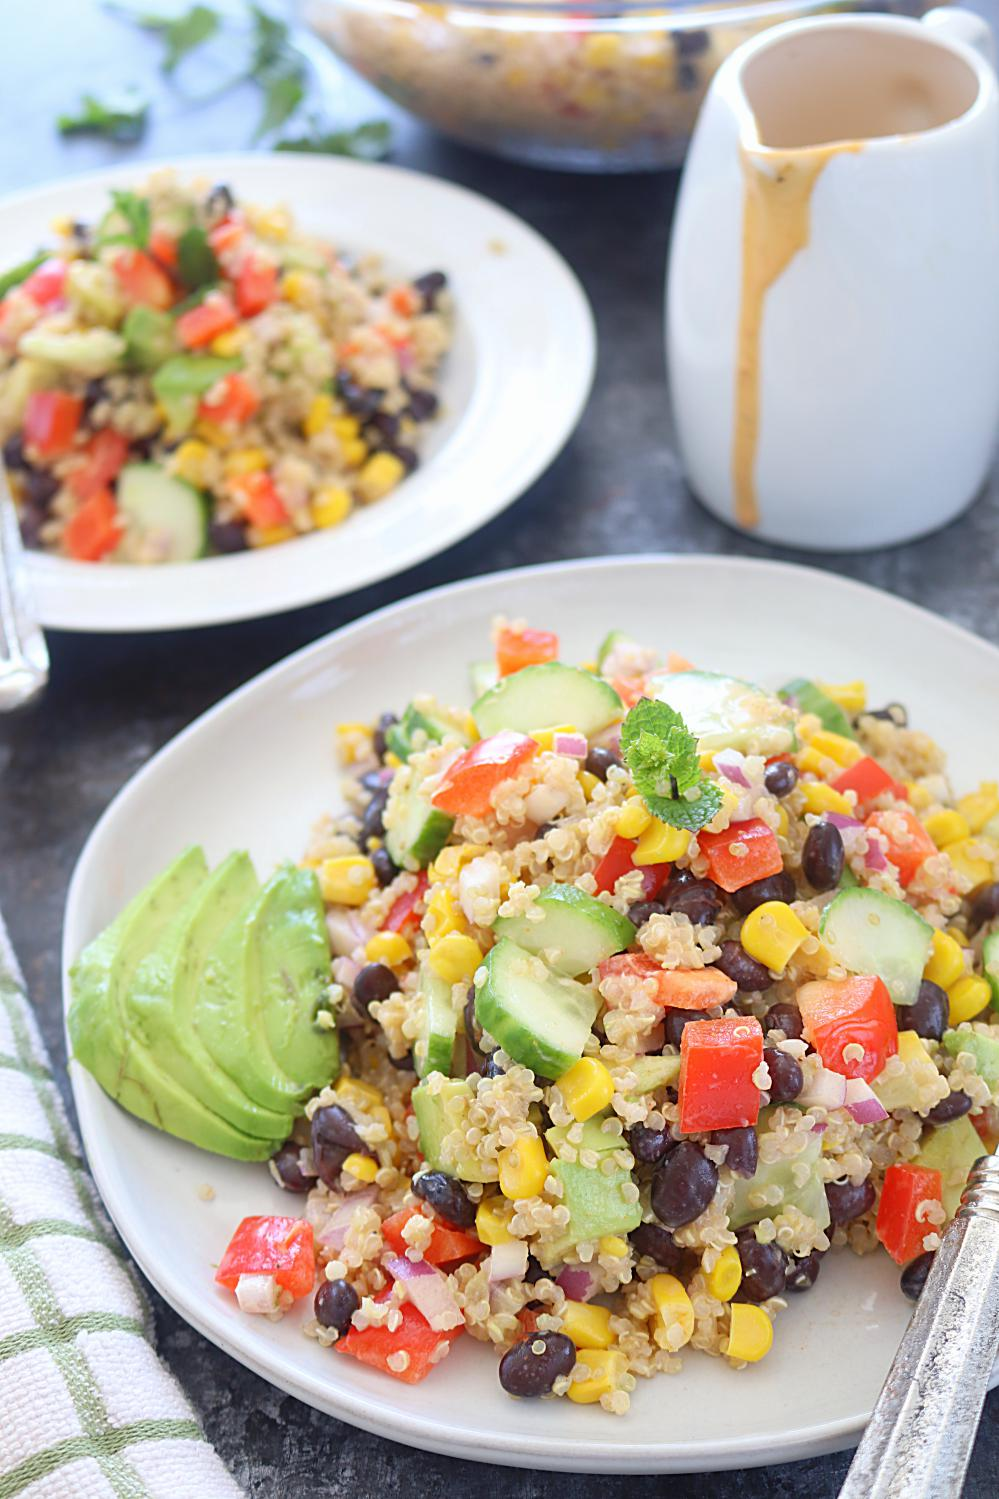 Healthy Quinoa and bean salad - Ruchiskitchen.com